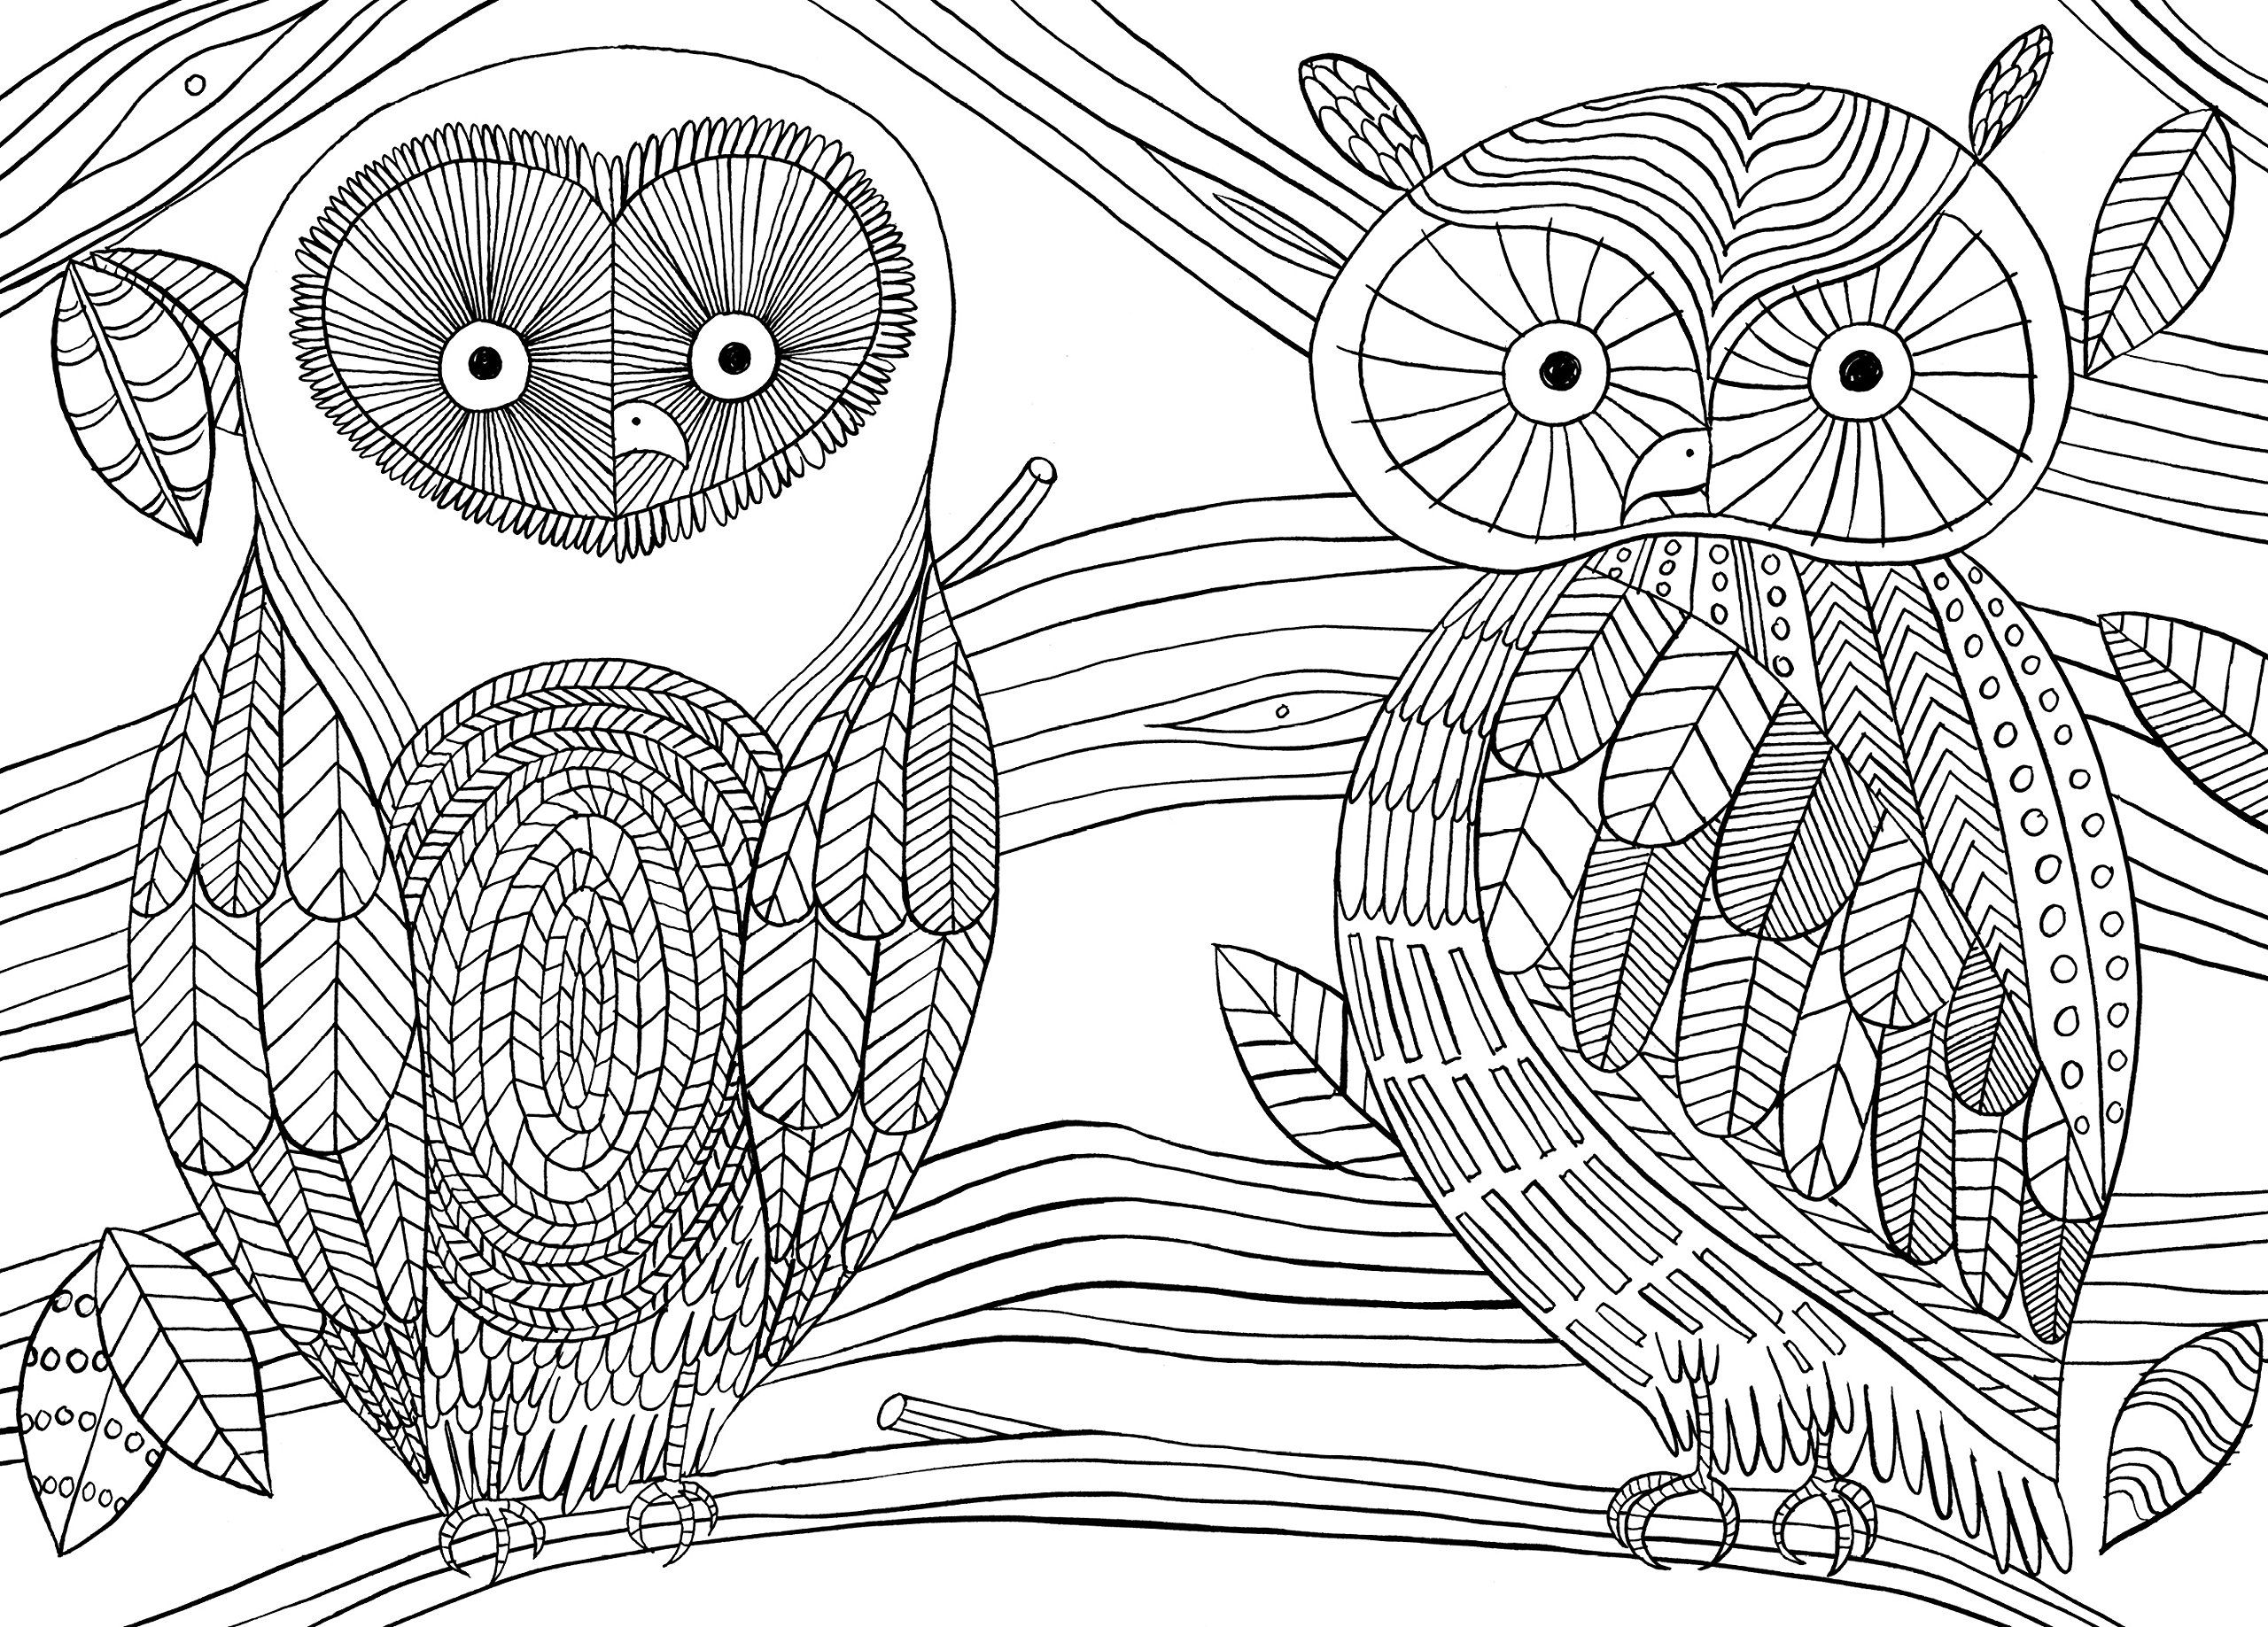 More Mindfulness Colouring Anti Stress Art Therapy For Busy People Amazon Owl Coloring PagesAdult